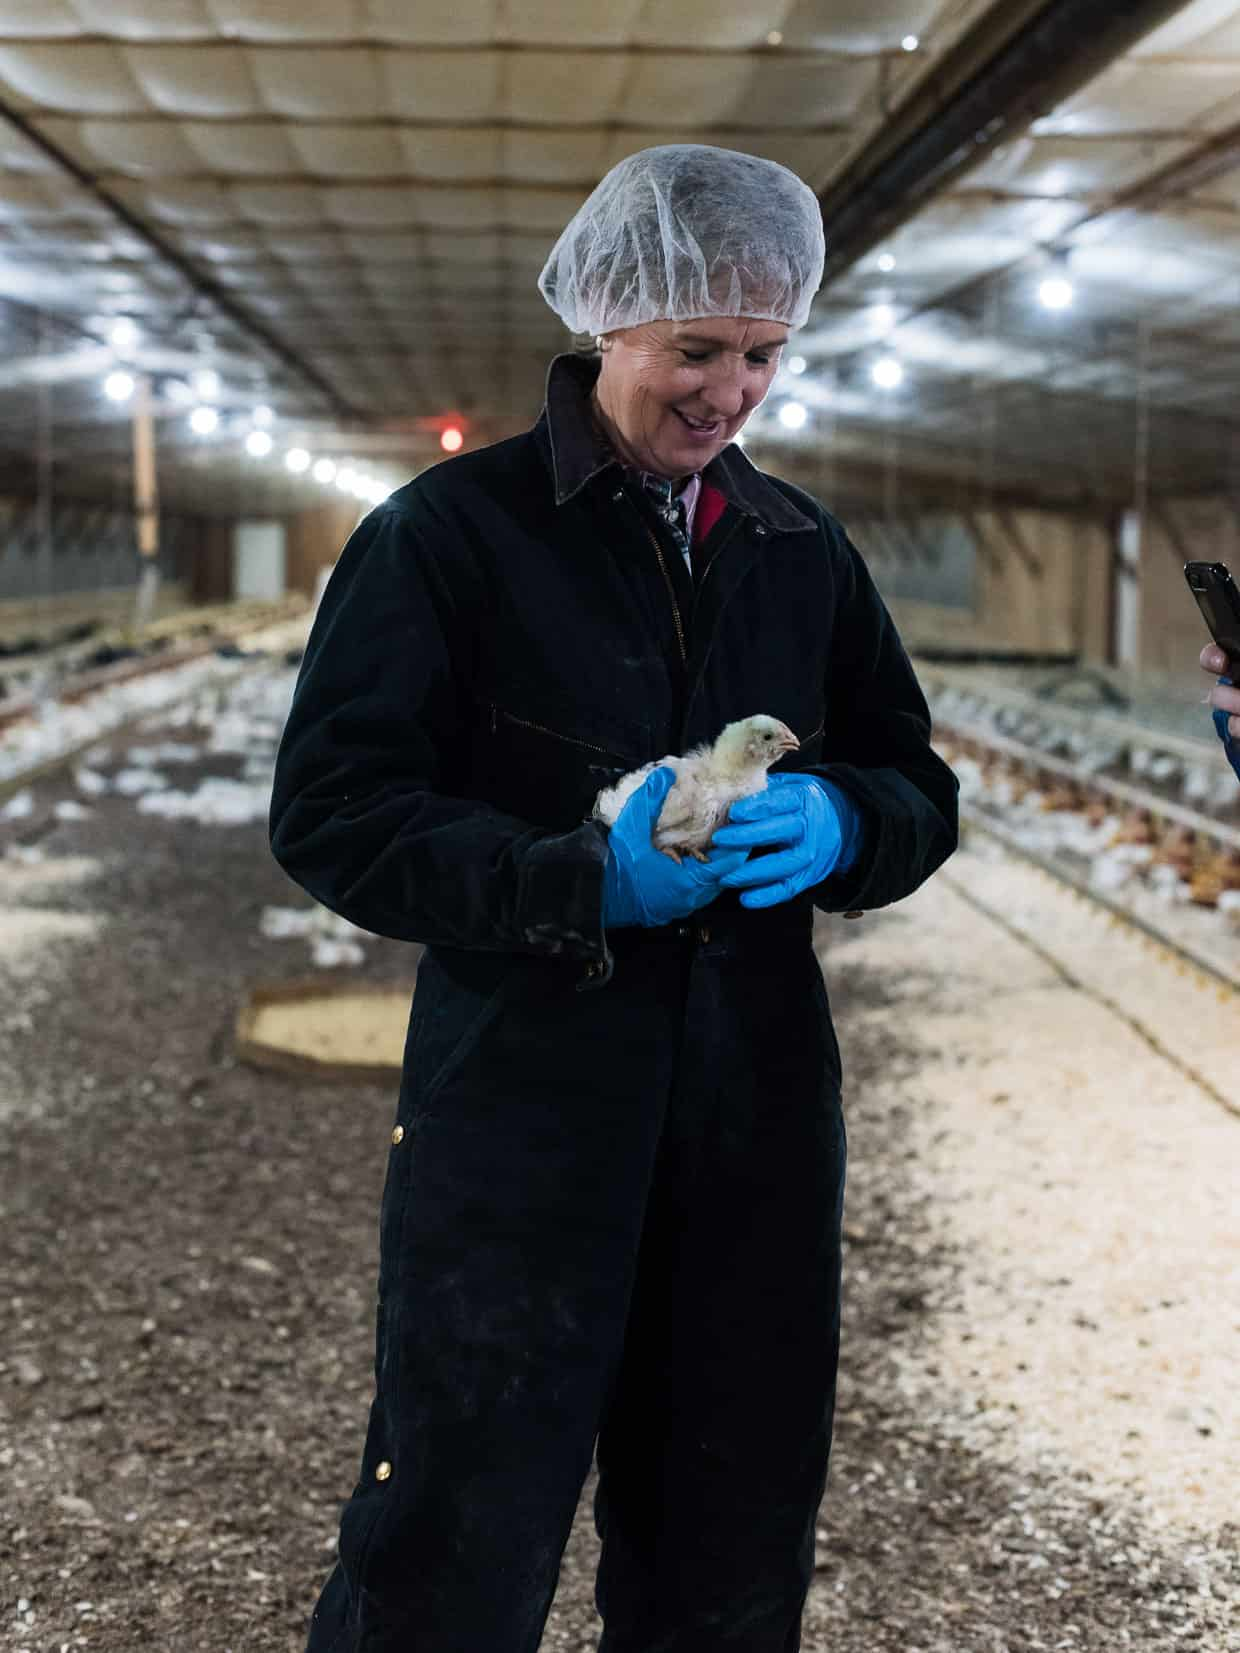 Jenny Rhodes and the chickens she raises. #sponsored National Chicken Council